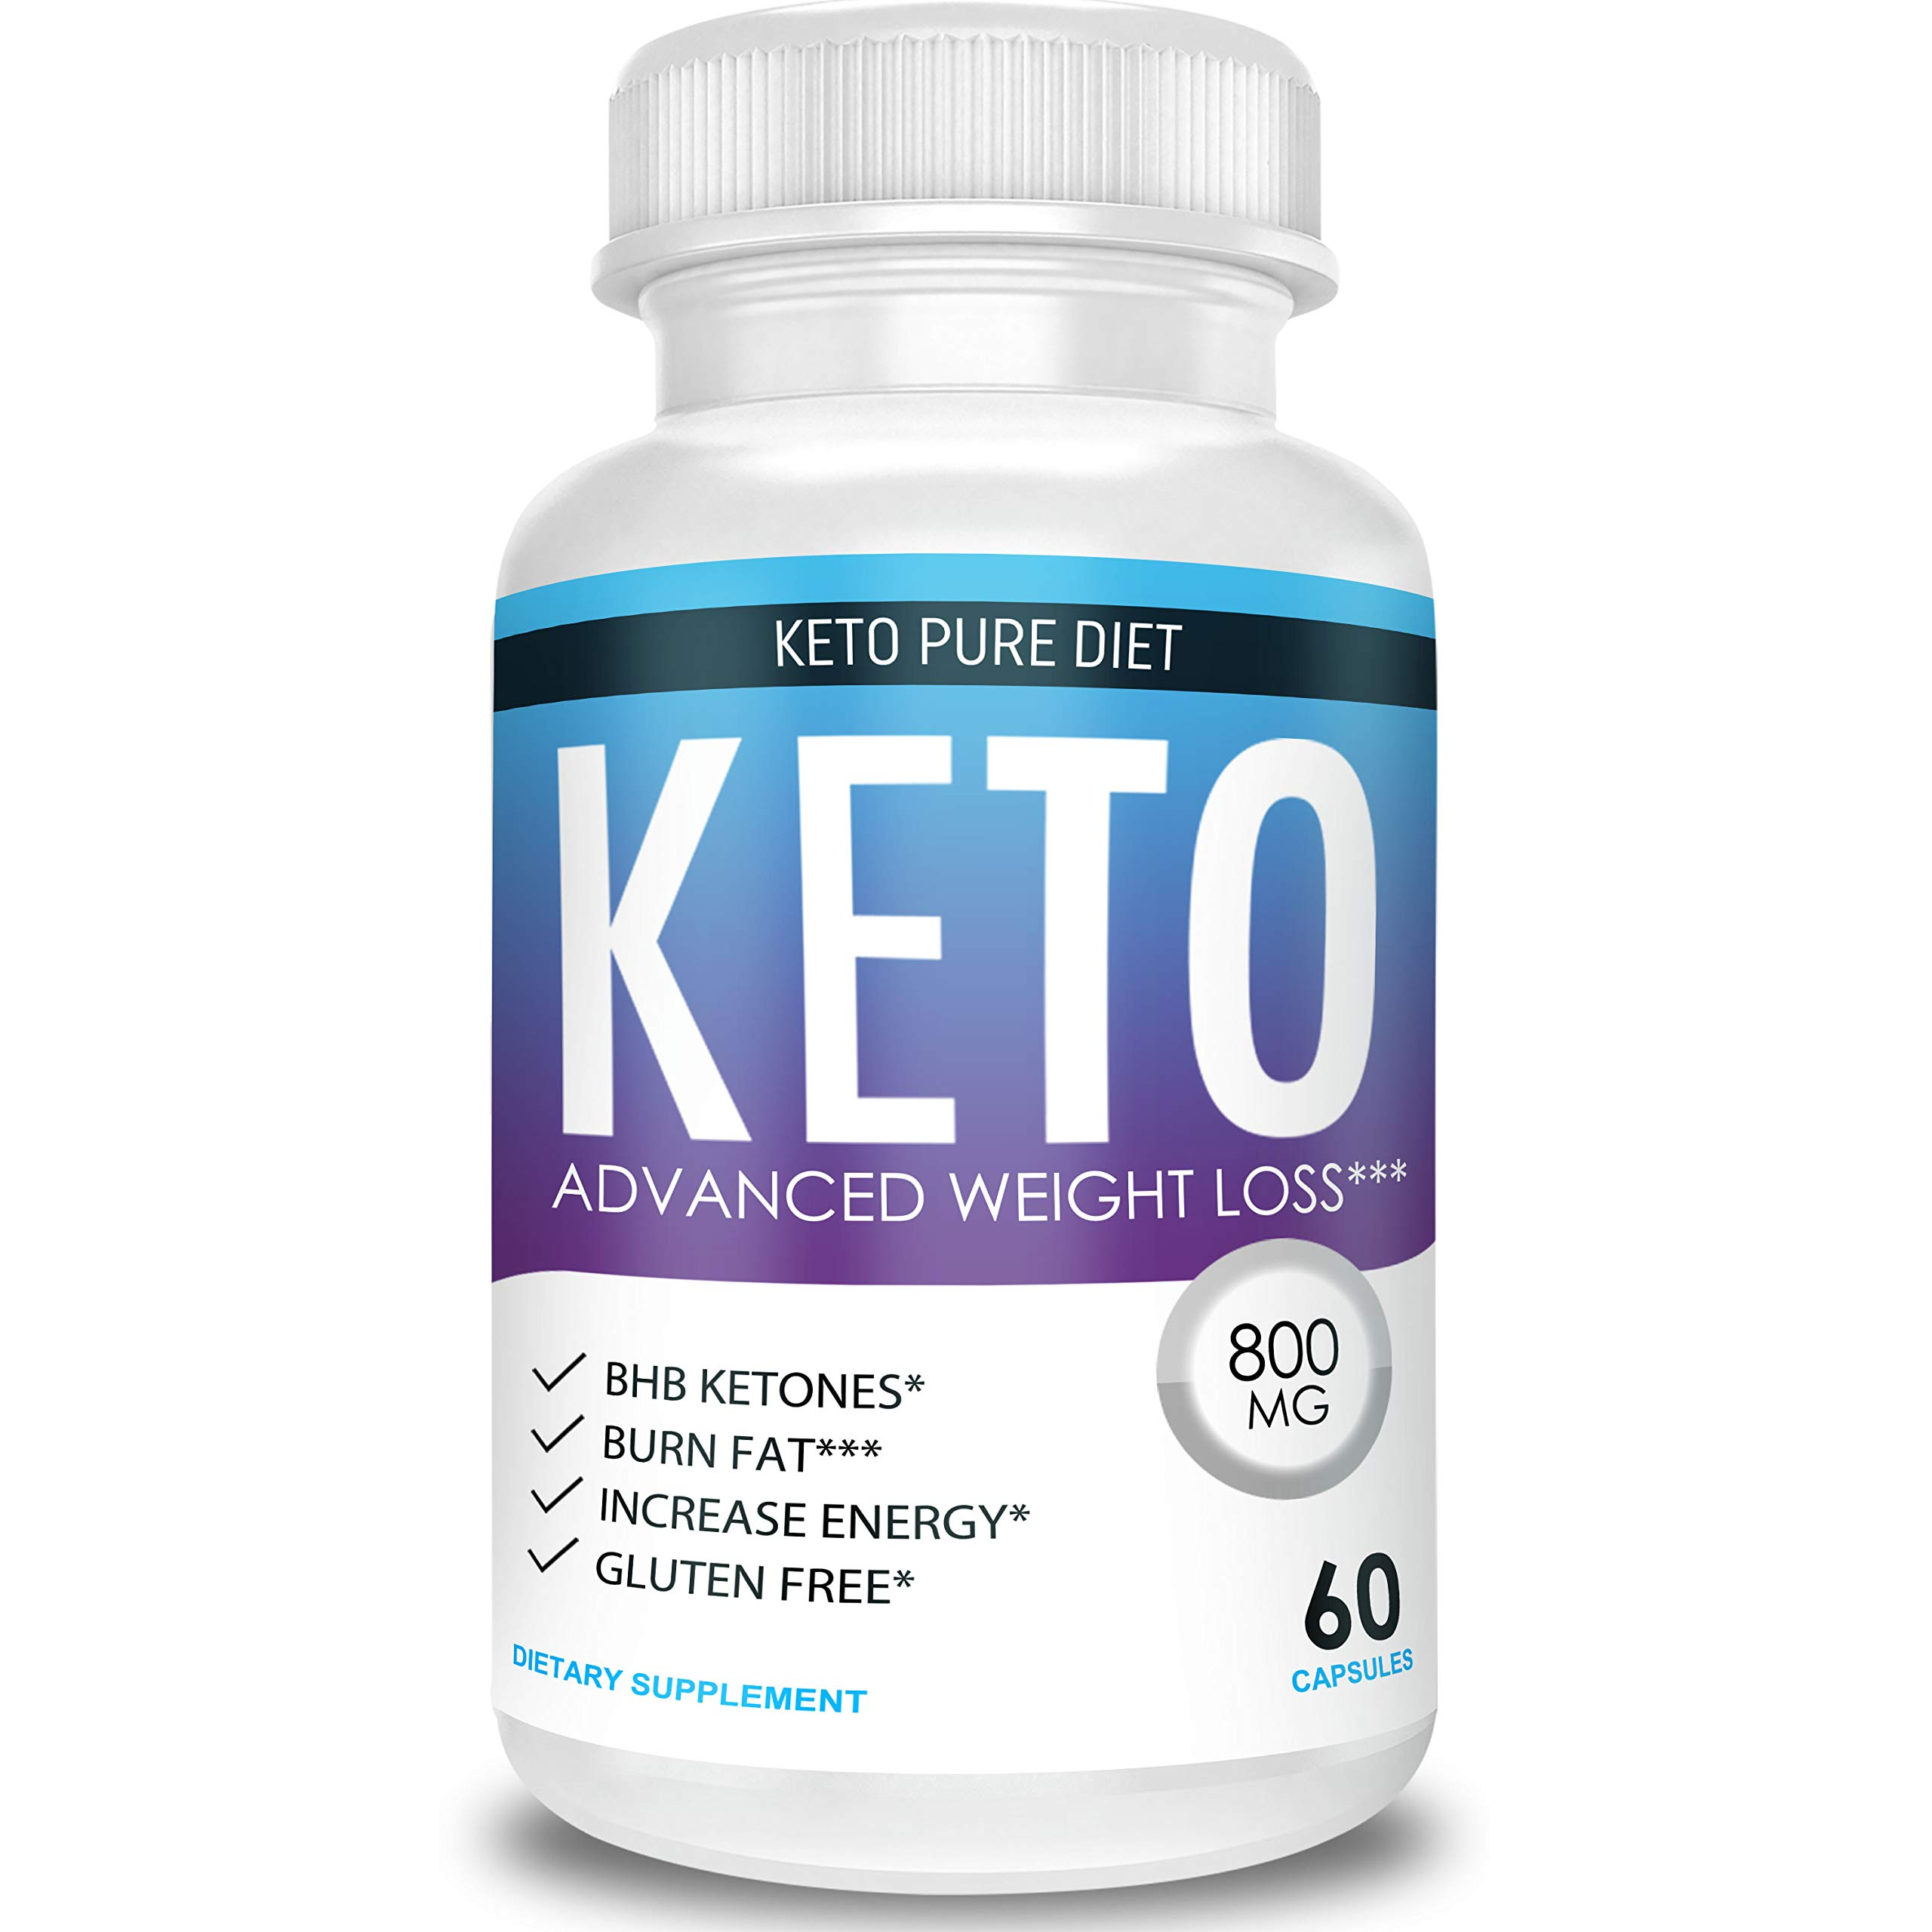 Keto Pure Diet - Advanced Weight Loss - Ketosis Supplement by Keto Pure Diet